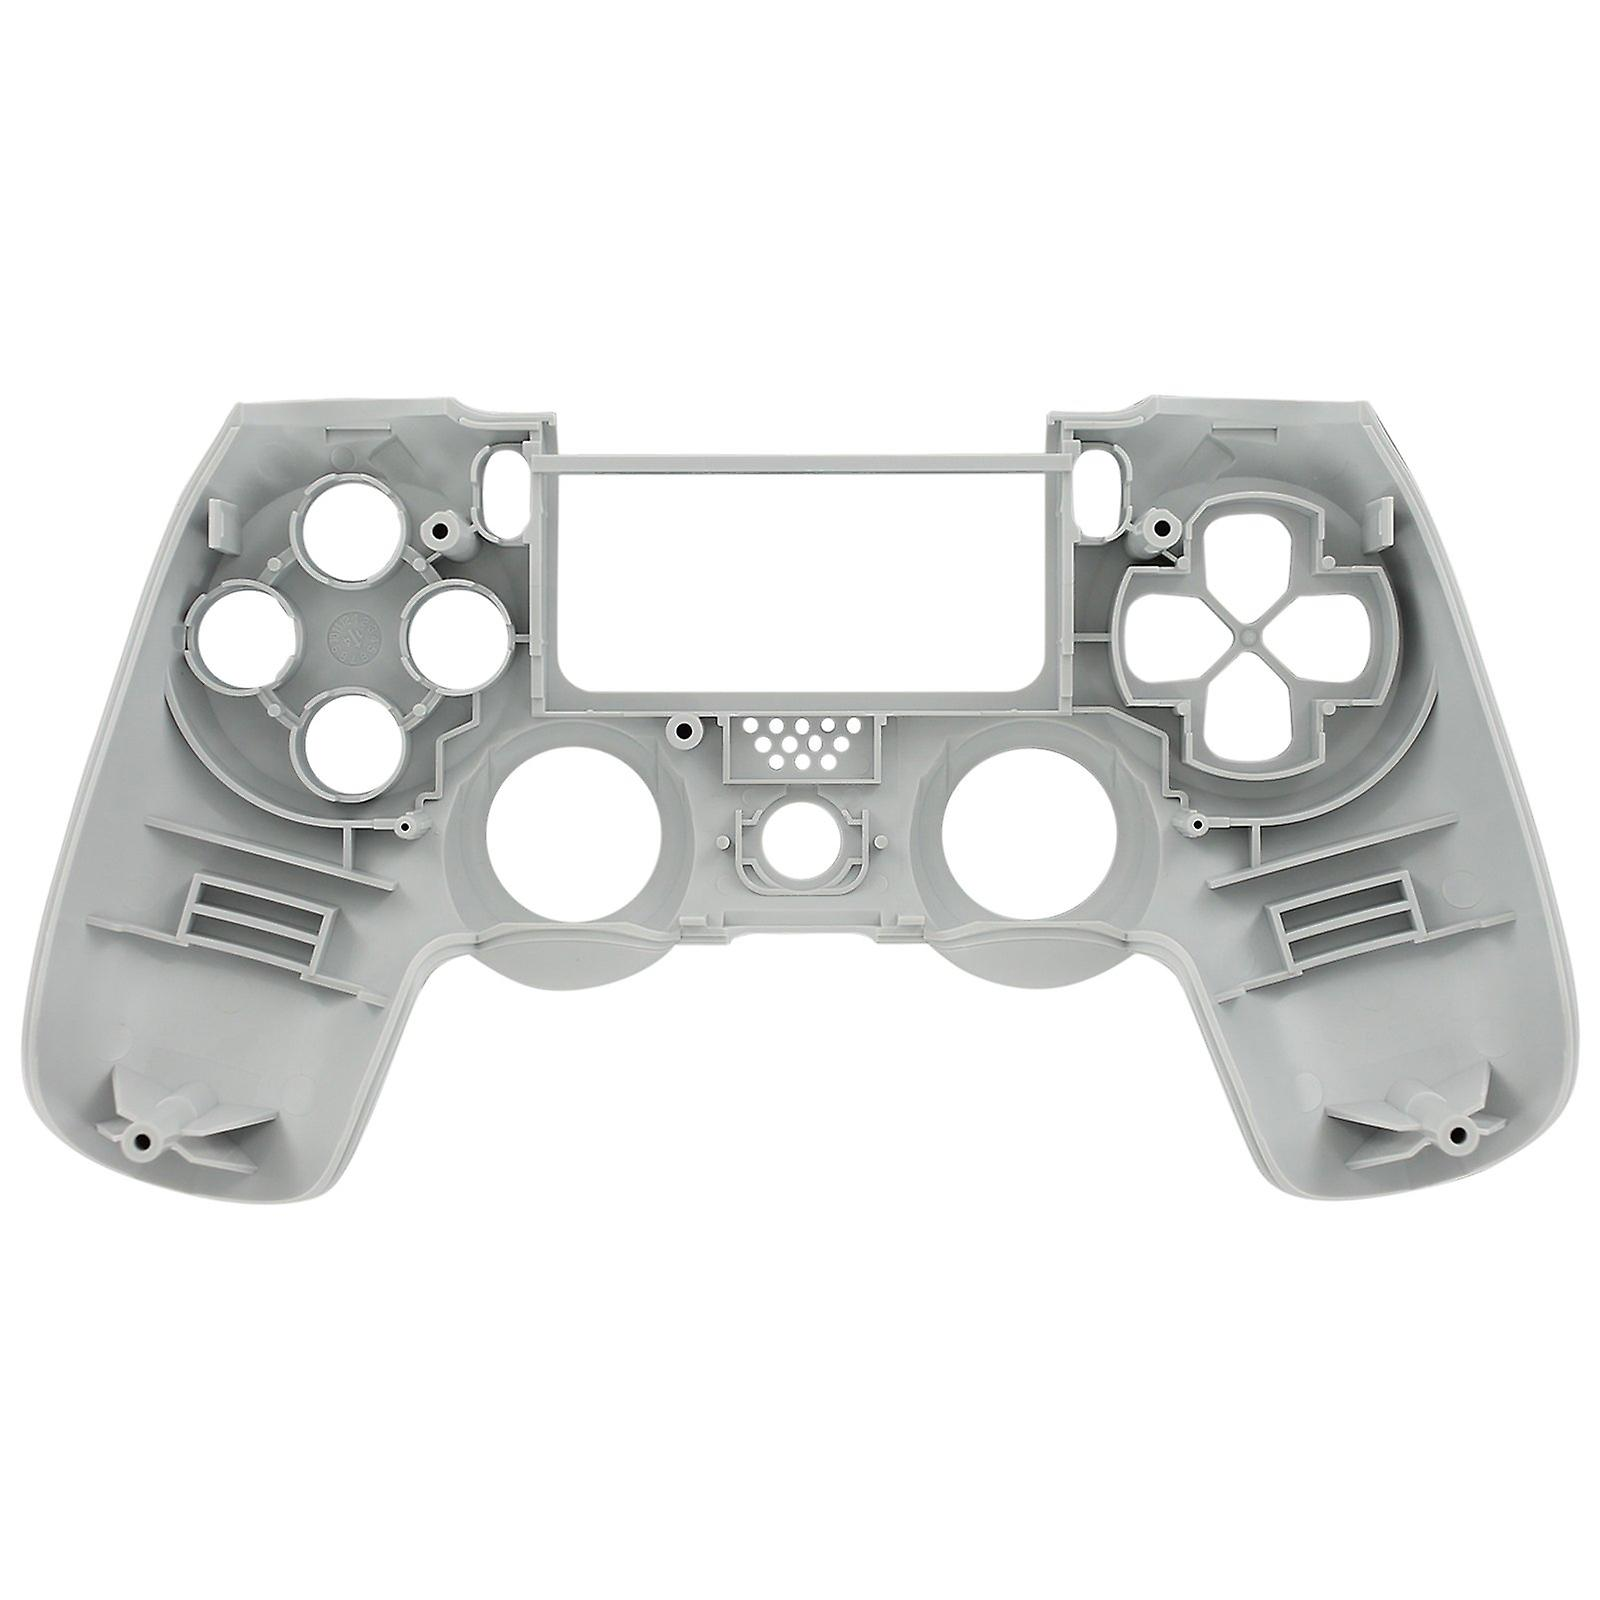 Replacement oem front housing shell face for sony ps4 playstation 4 controllers - white